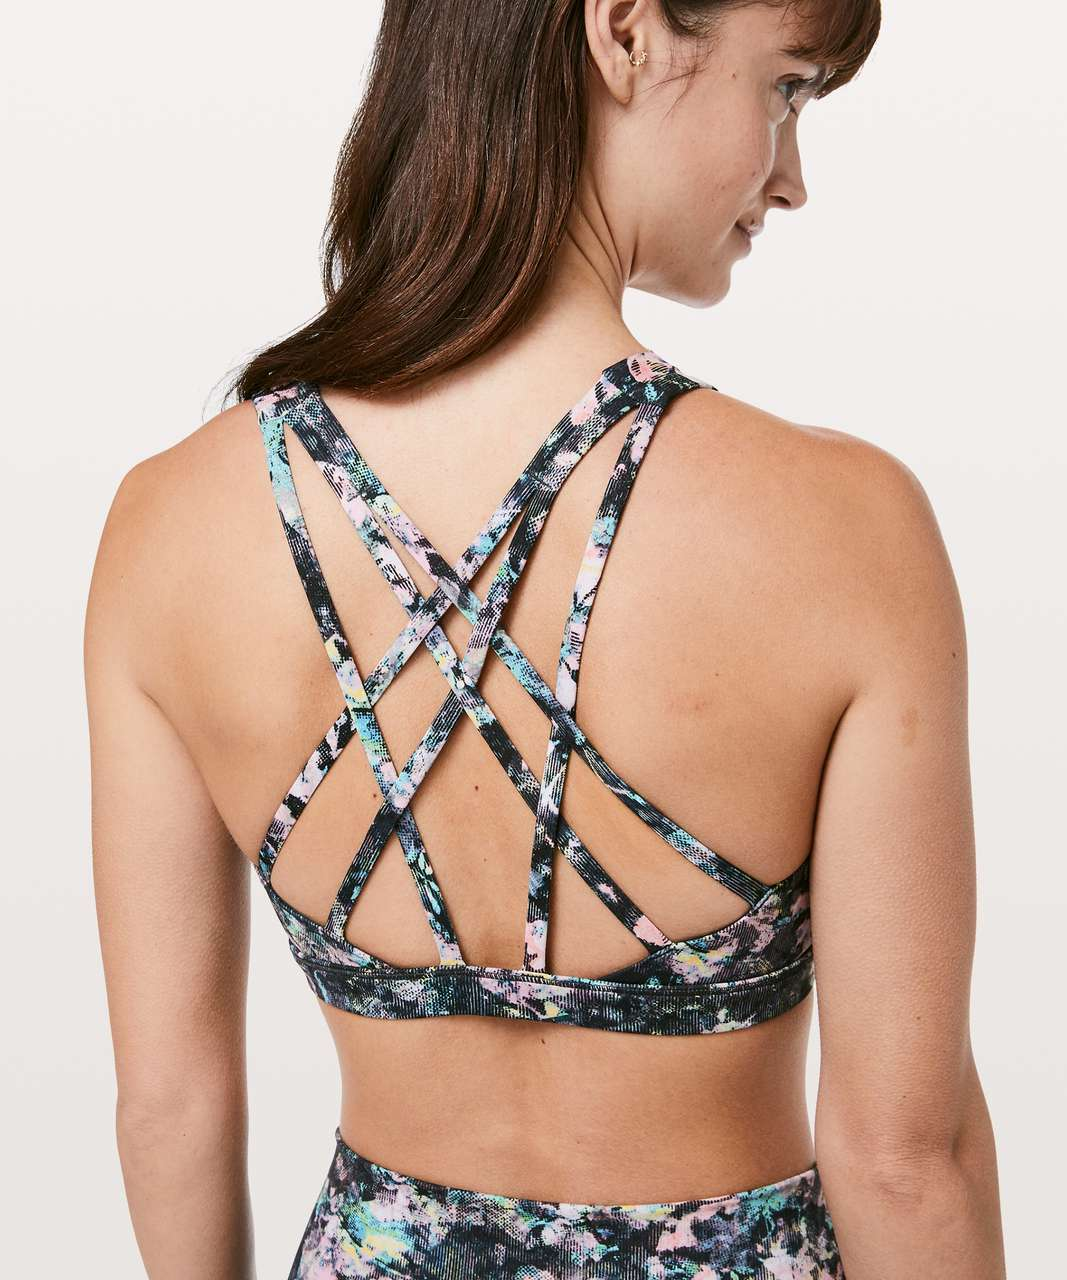 Lululemon Free To Be Serene Bra - Dappled Daze Multi